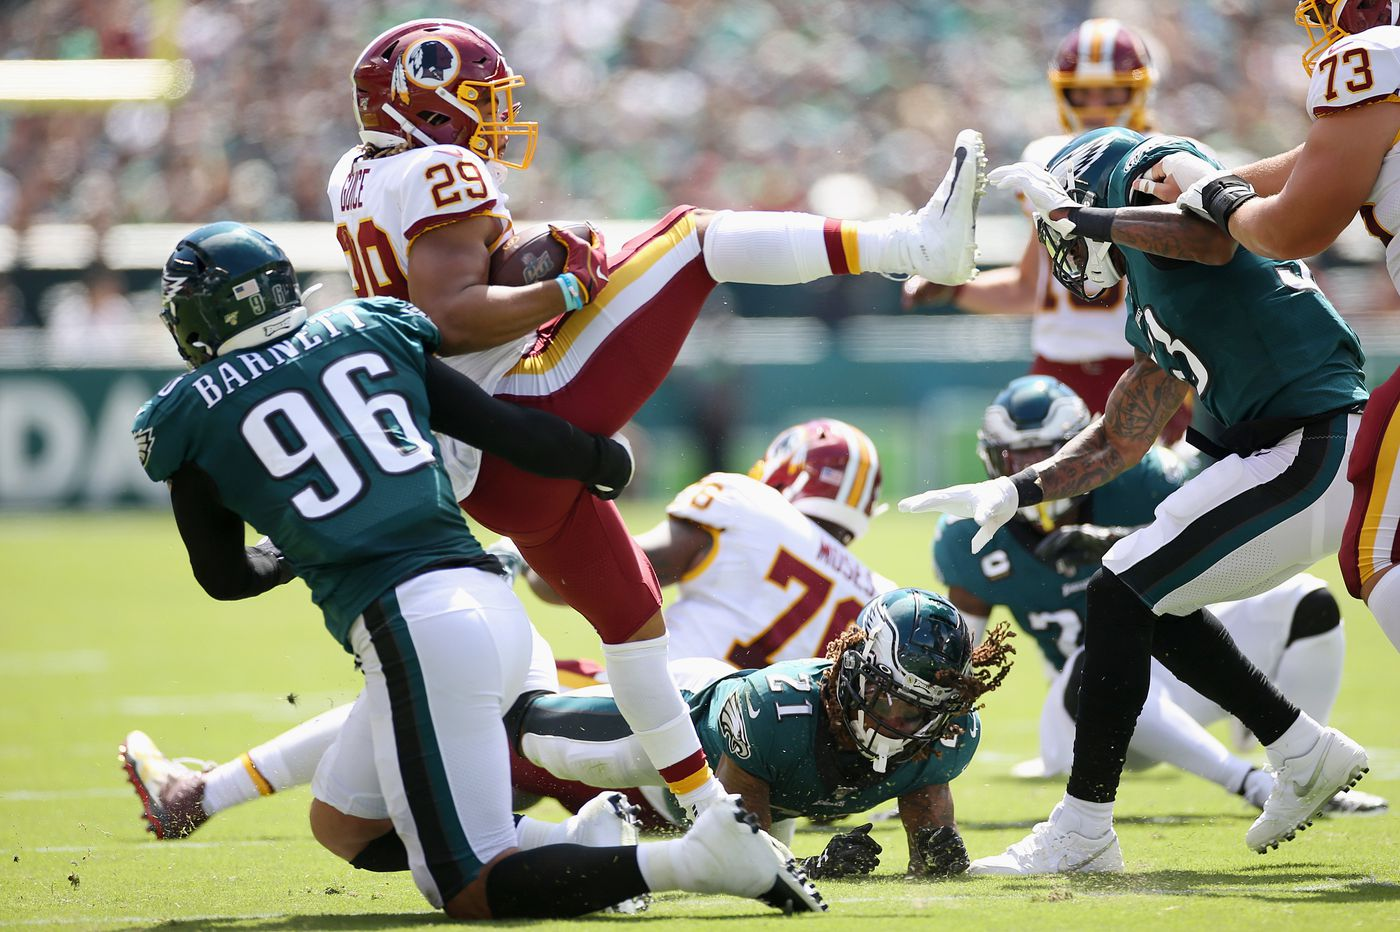 NFL betting: Last-minute Redskins TD vs. Eagles cost sports bettors 'seven figures'